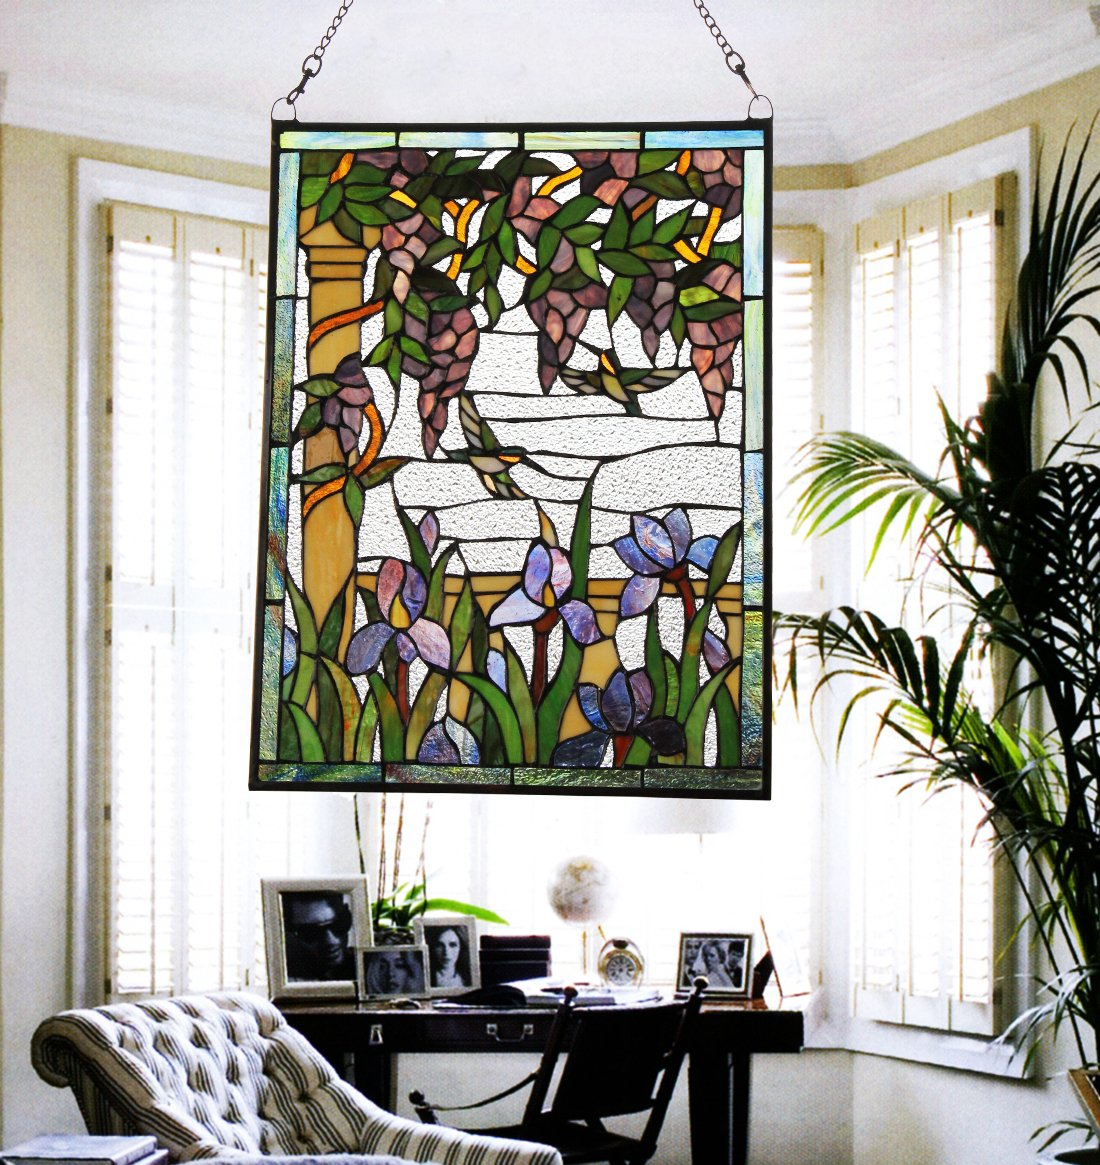 Makenier Vintage Tiffany Style Stained Art Glass Wisteria and Hummingbirds Window Panel Wall Hanging 2